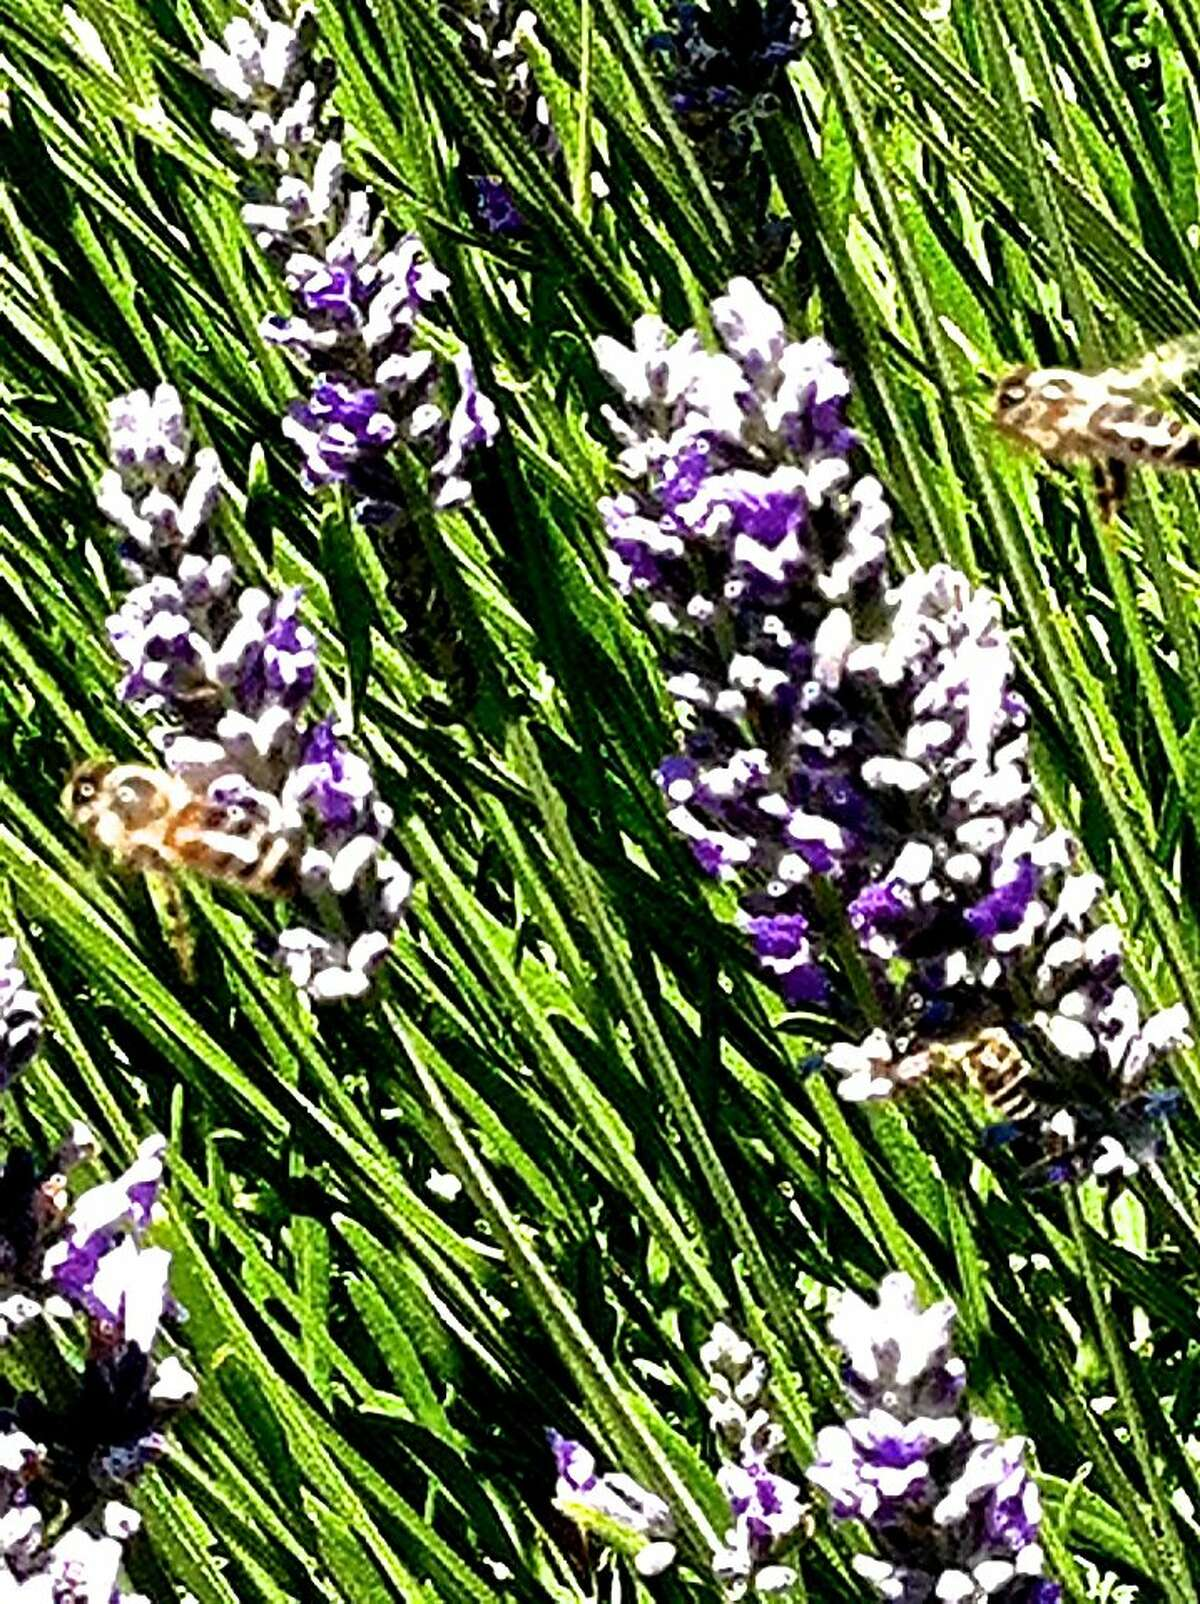 A closeup look at blooming lavender in Carmel Valley Ranch reveals plenty of busy honeybees, predominantly the golden-colored Italian bees favored for their high productivity and calm disposition. The resort's hives also include grayer Karnolian bees (a Slovenian breed) and Russian-Karnolian bees, a hardy hybrid.